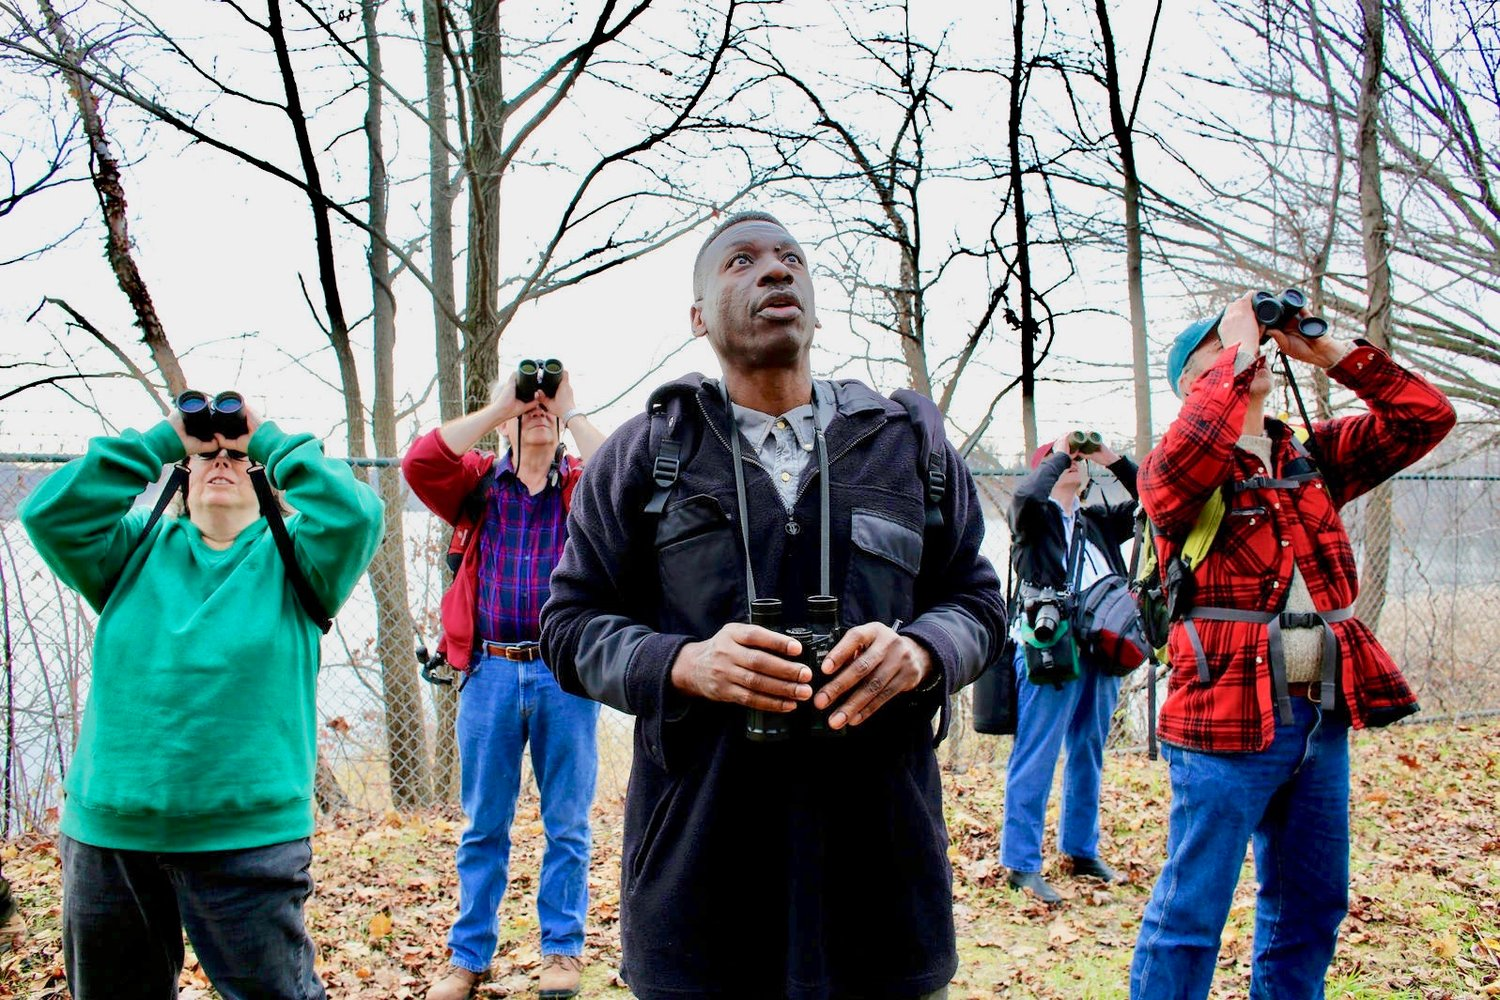 Keith Russell (center), who grew up in West Mt. Airy but now lives in Germantown, is seen here bird-watching with fellow members of the National Audubon Society. An ornithologist, Russell is program manager of Urban Conservation at Audubon Pennsylvania. (Photo courtesy of National Audubon Society)